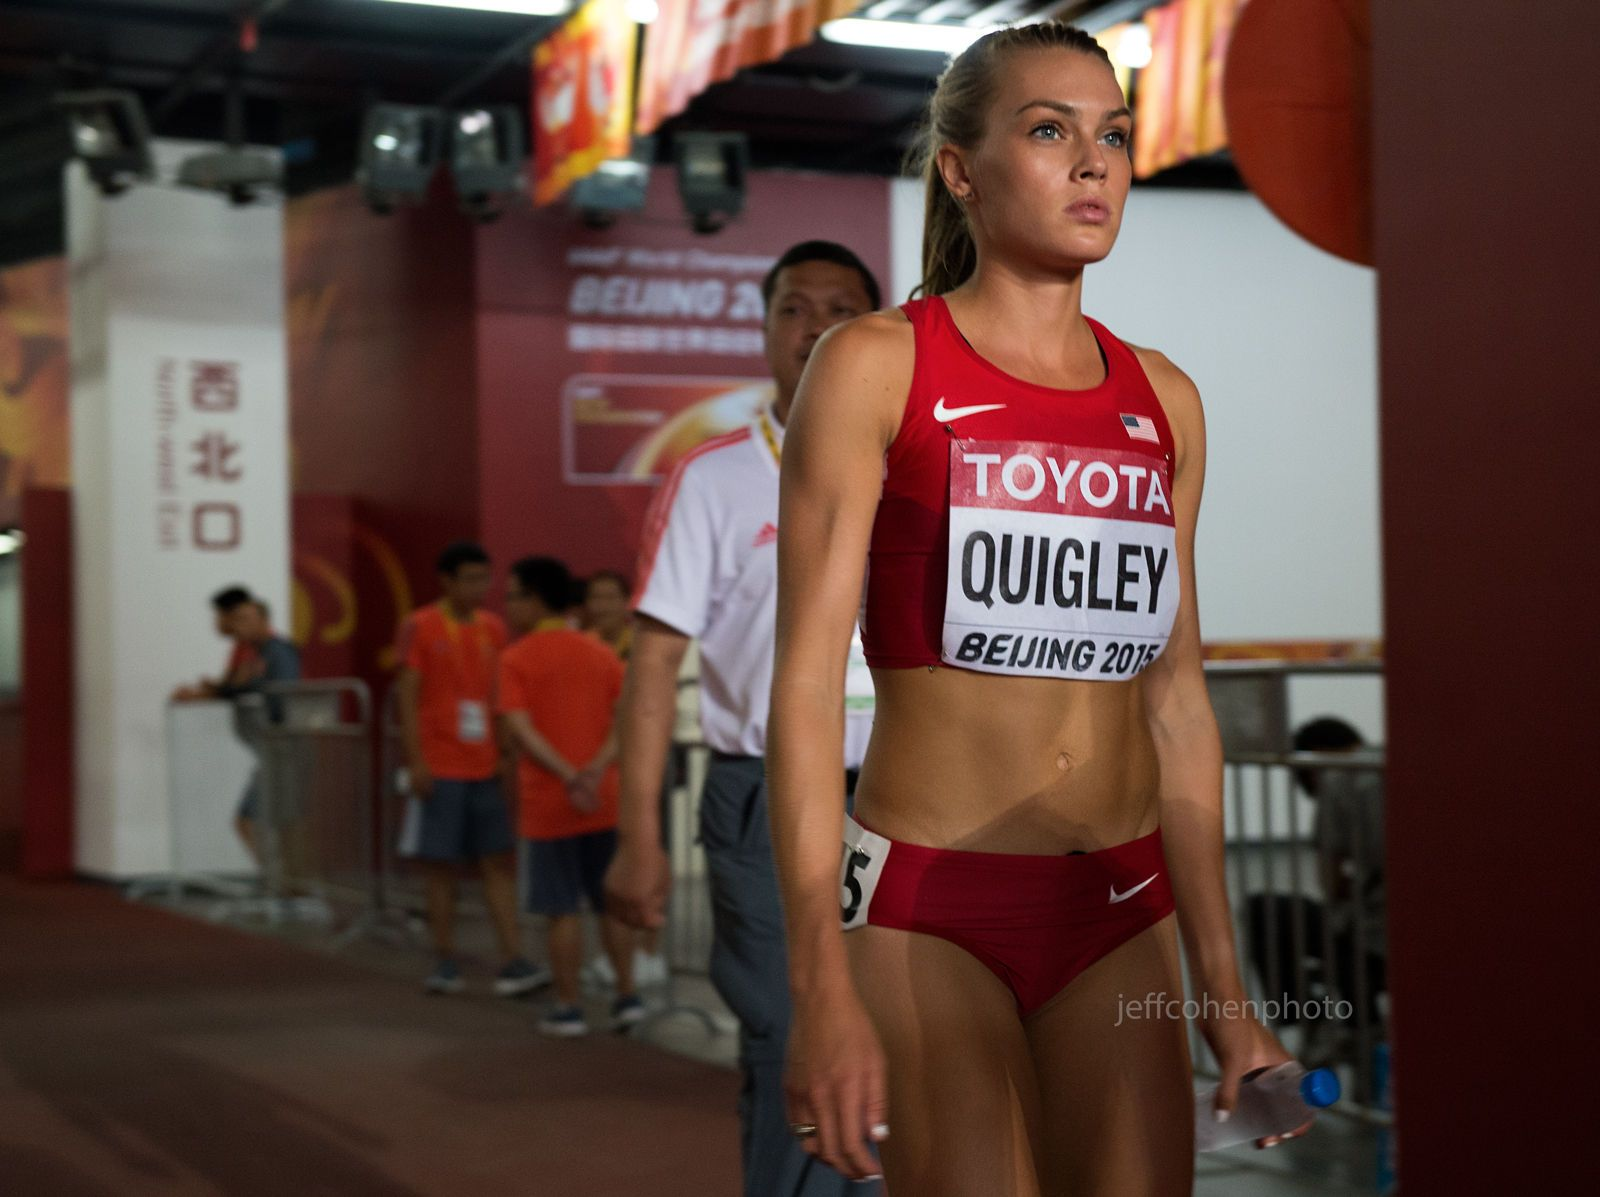 1beijing2015_night__5_coleen_quigley_steeple_jeff_cohen_photo_21802_web.jpg